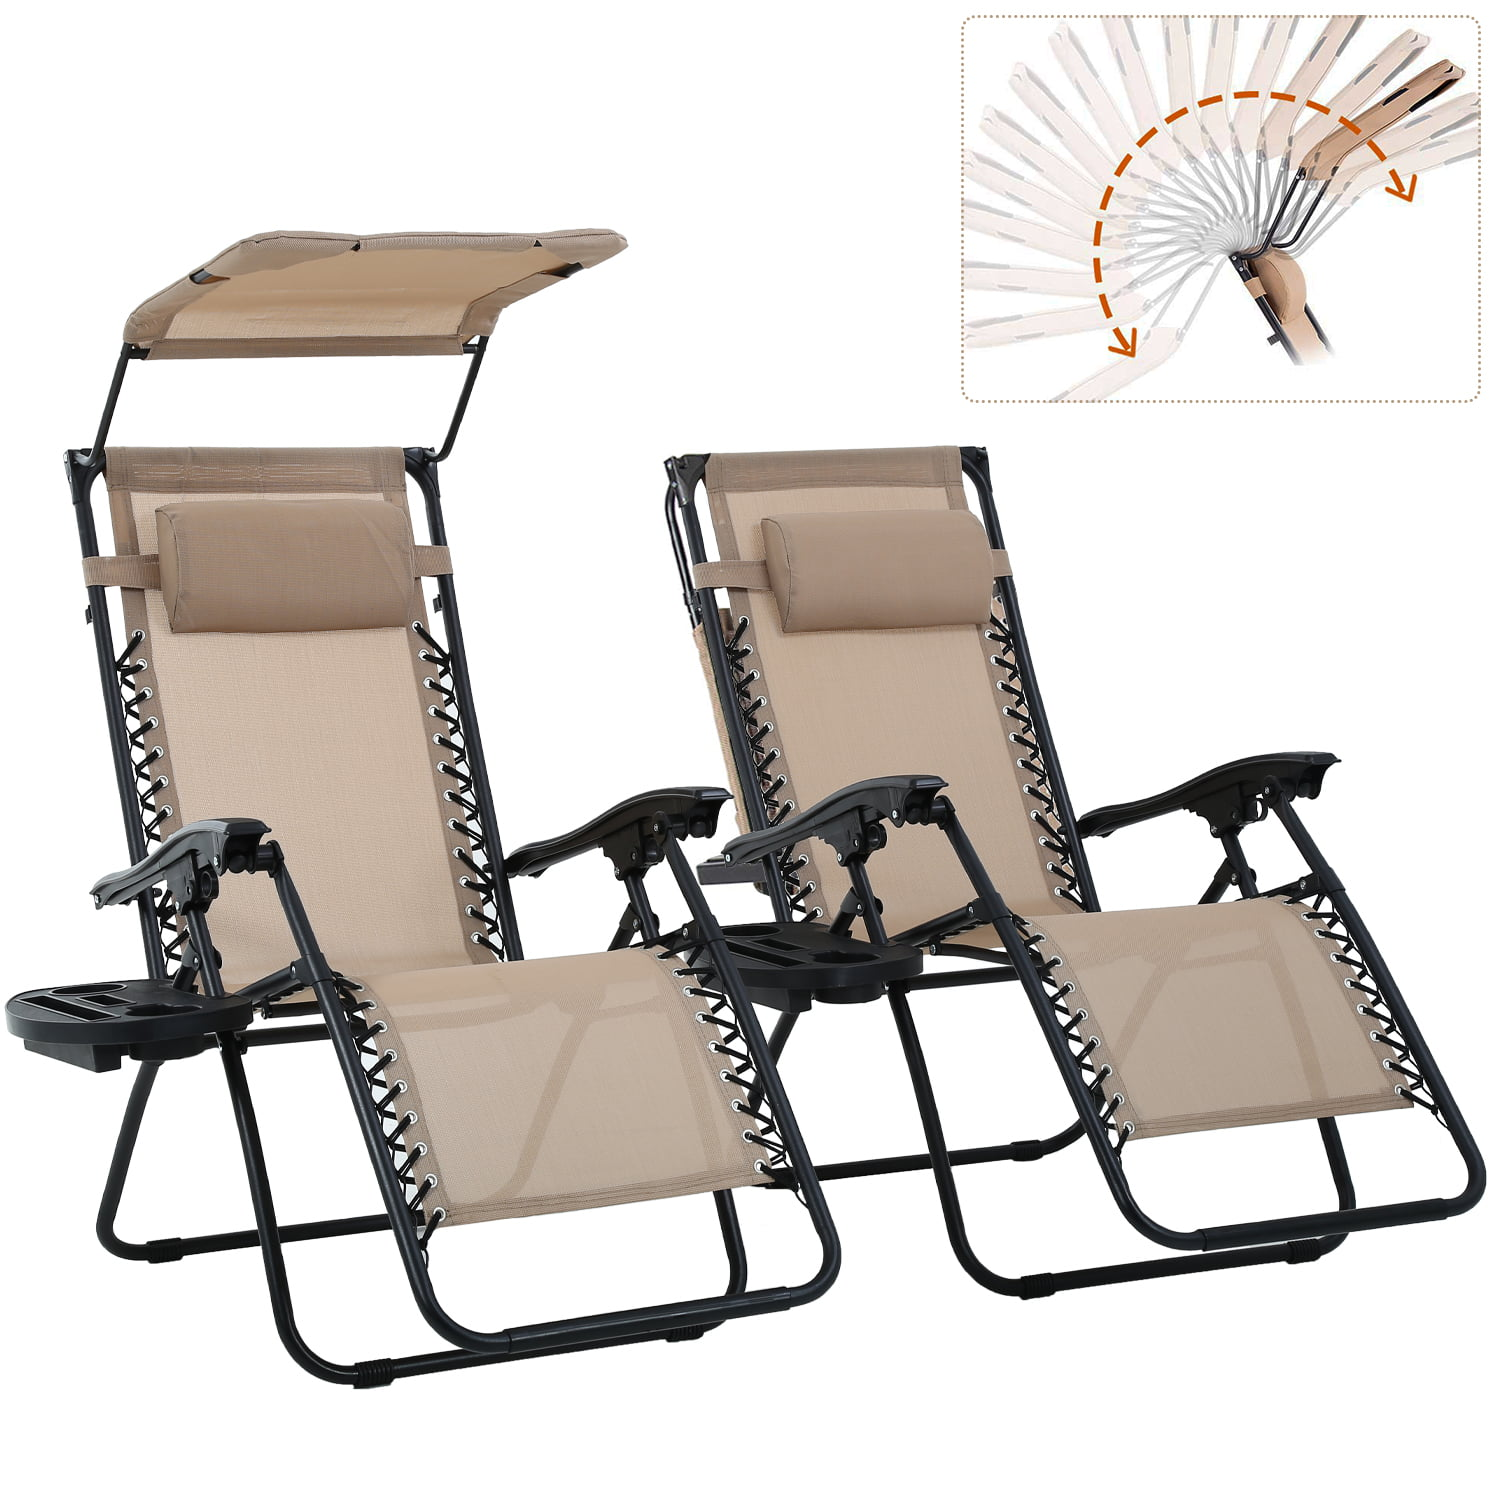 Patio Zero Gravity Lounge Chair 2 Pack Recliner For Outdoor Funiture W Folding Canopy Shade And Cup Holder Tan Walmart Com Walmart Com